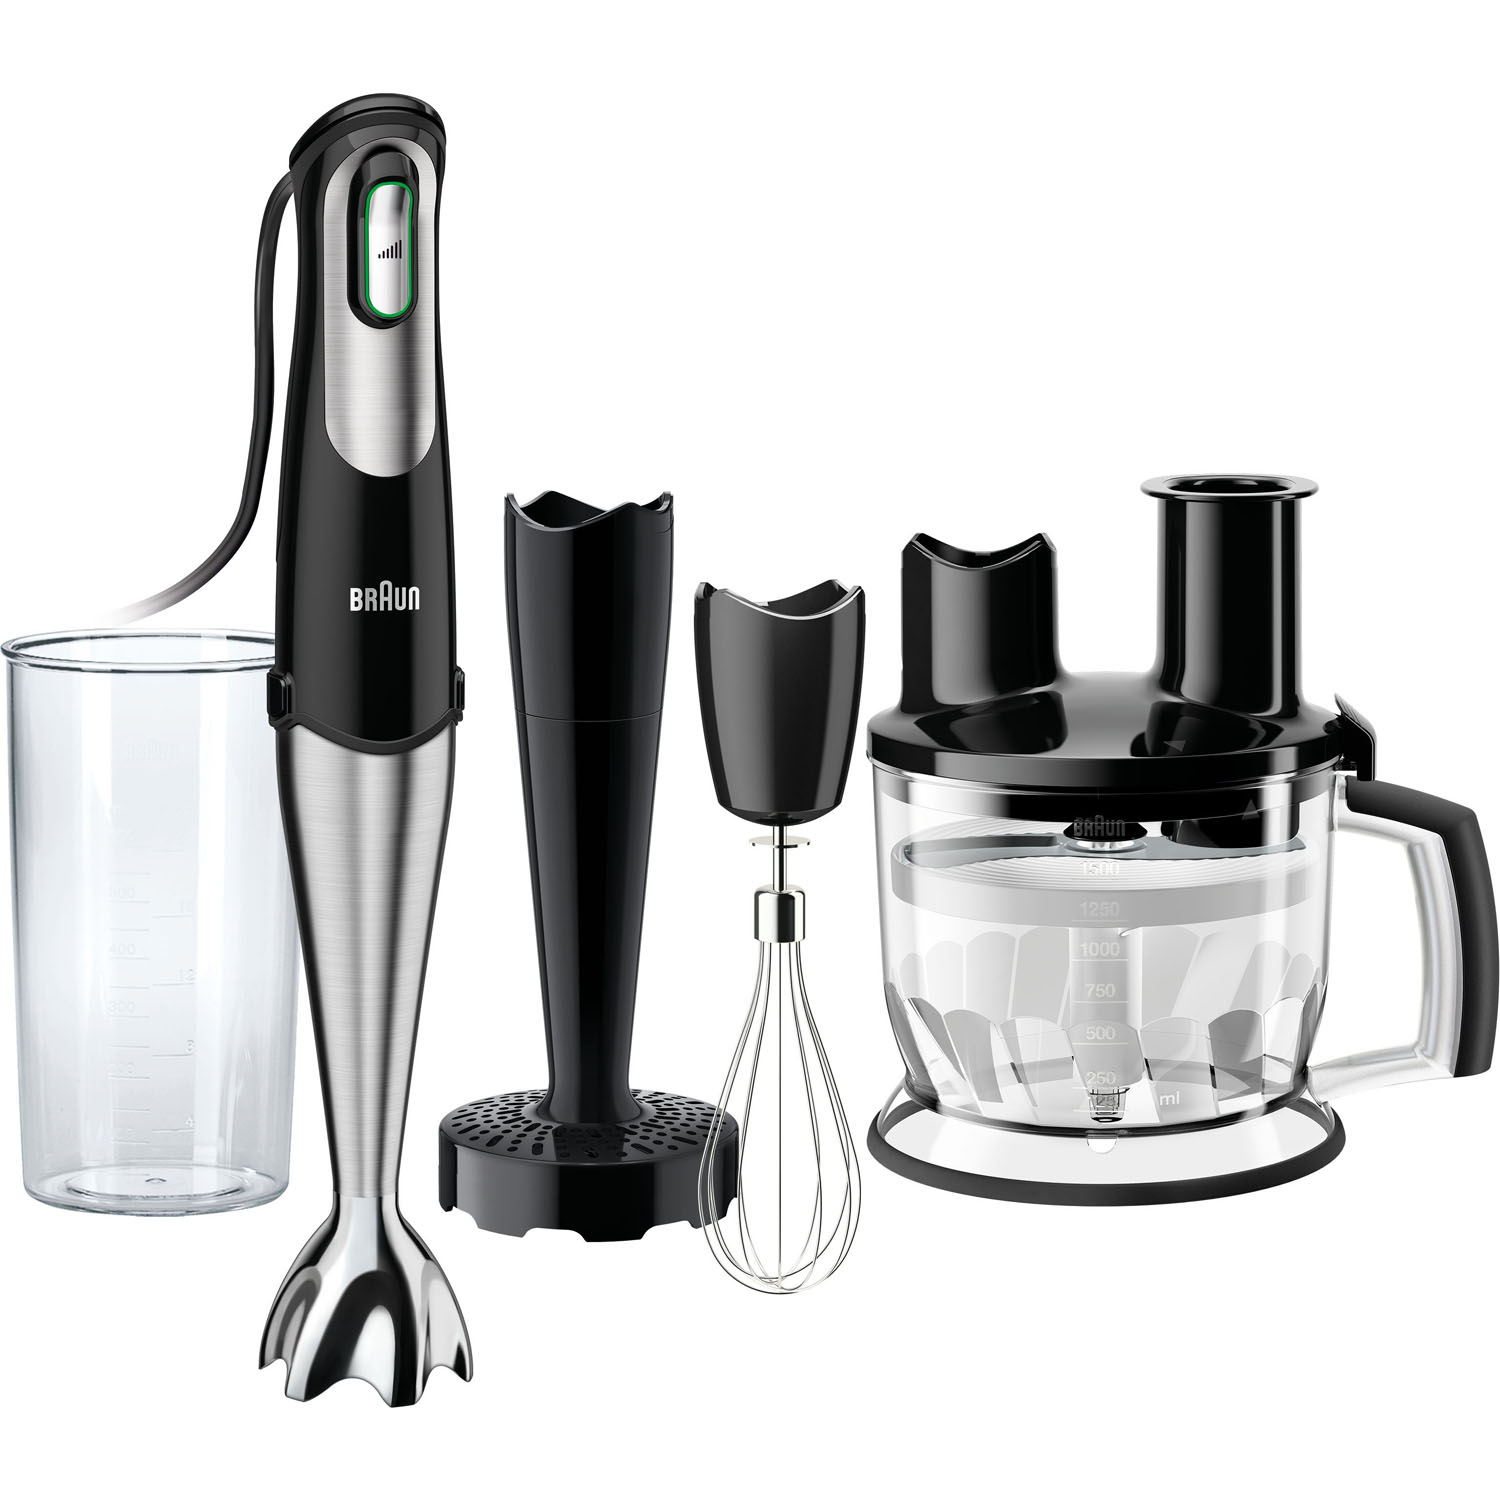 Braun MultiQuick 7 Smart-Speed Hand Blender with 6-Cup Food Processor